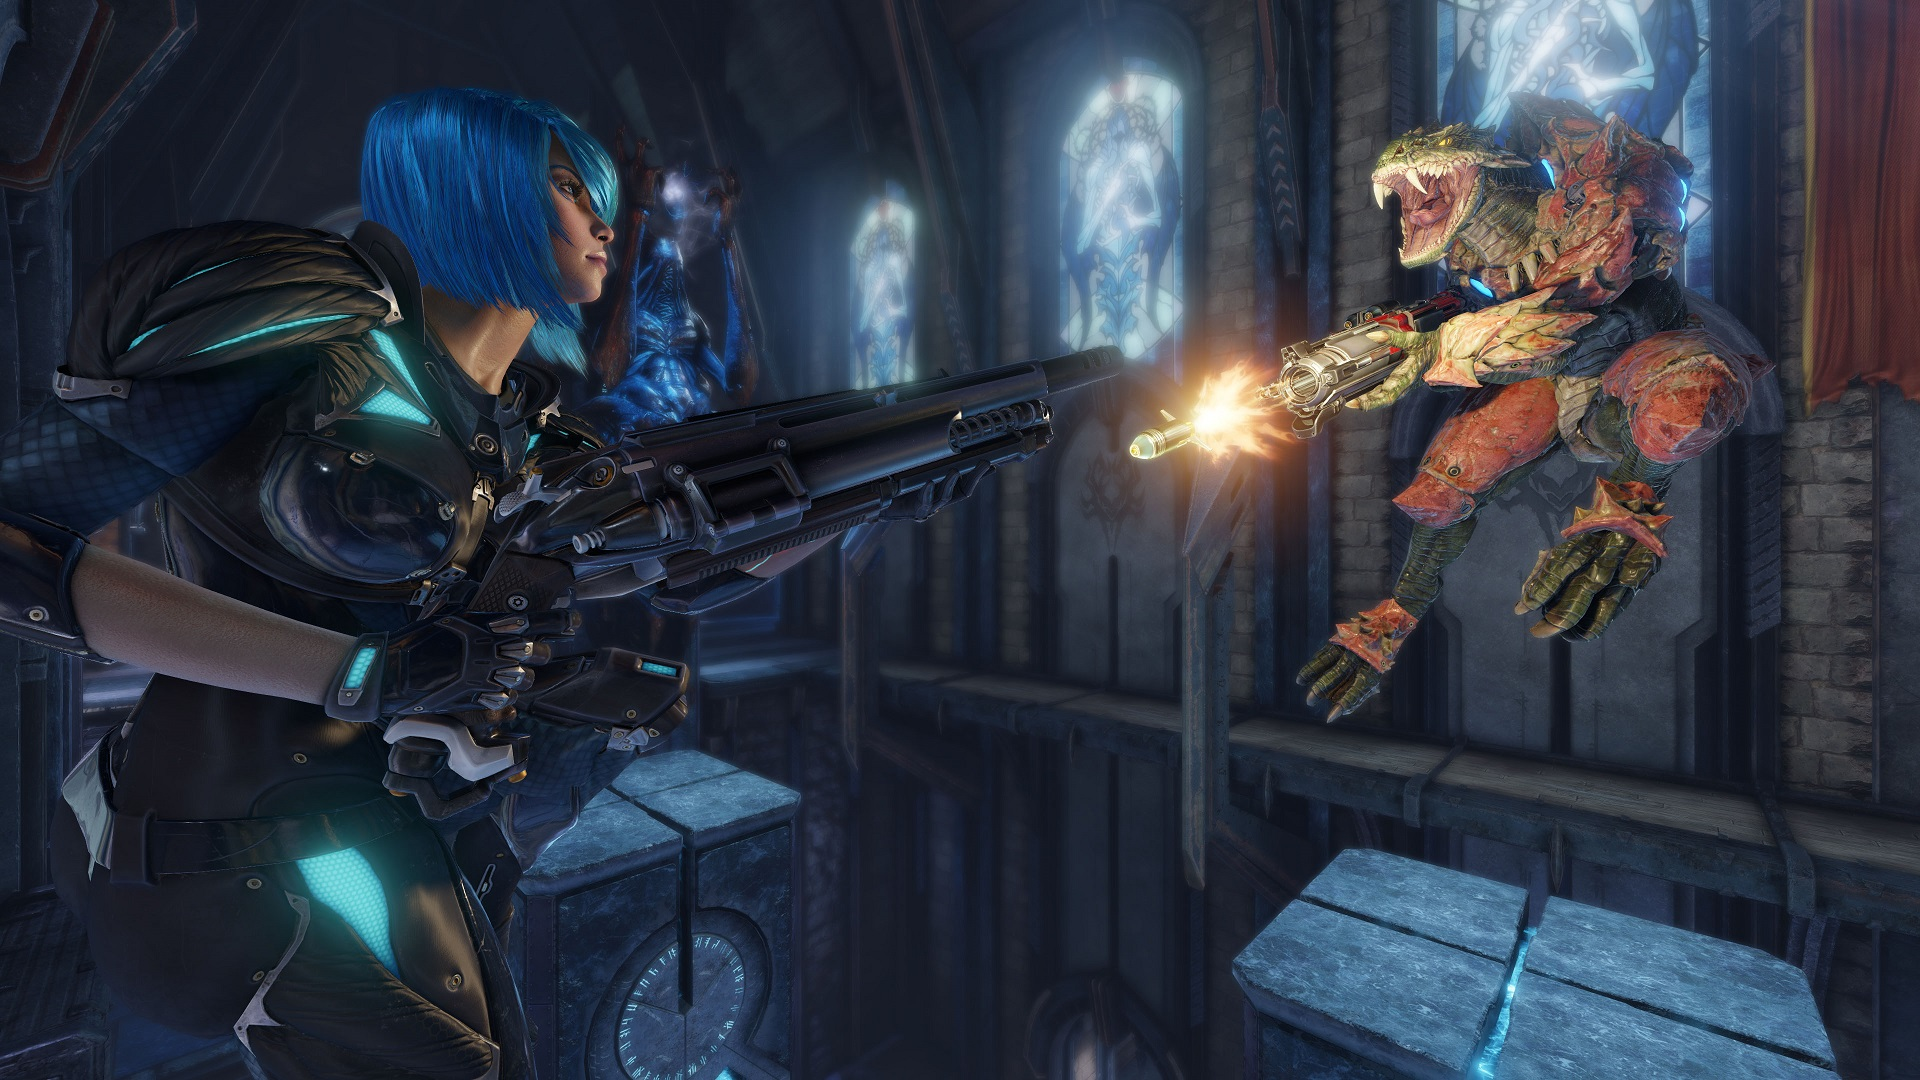 Quake Champions' Duel mode raises questions about its free-to-play model screenshot